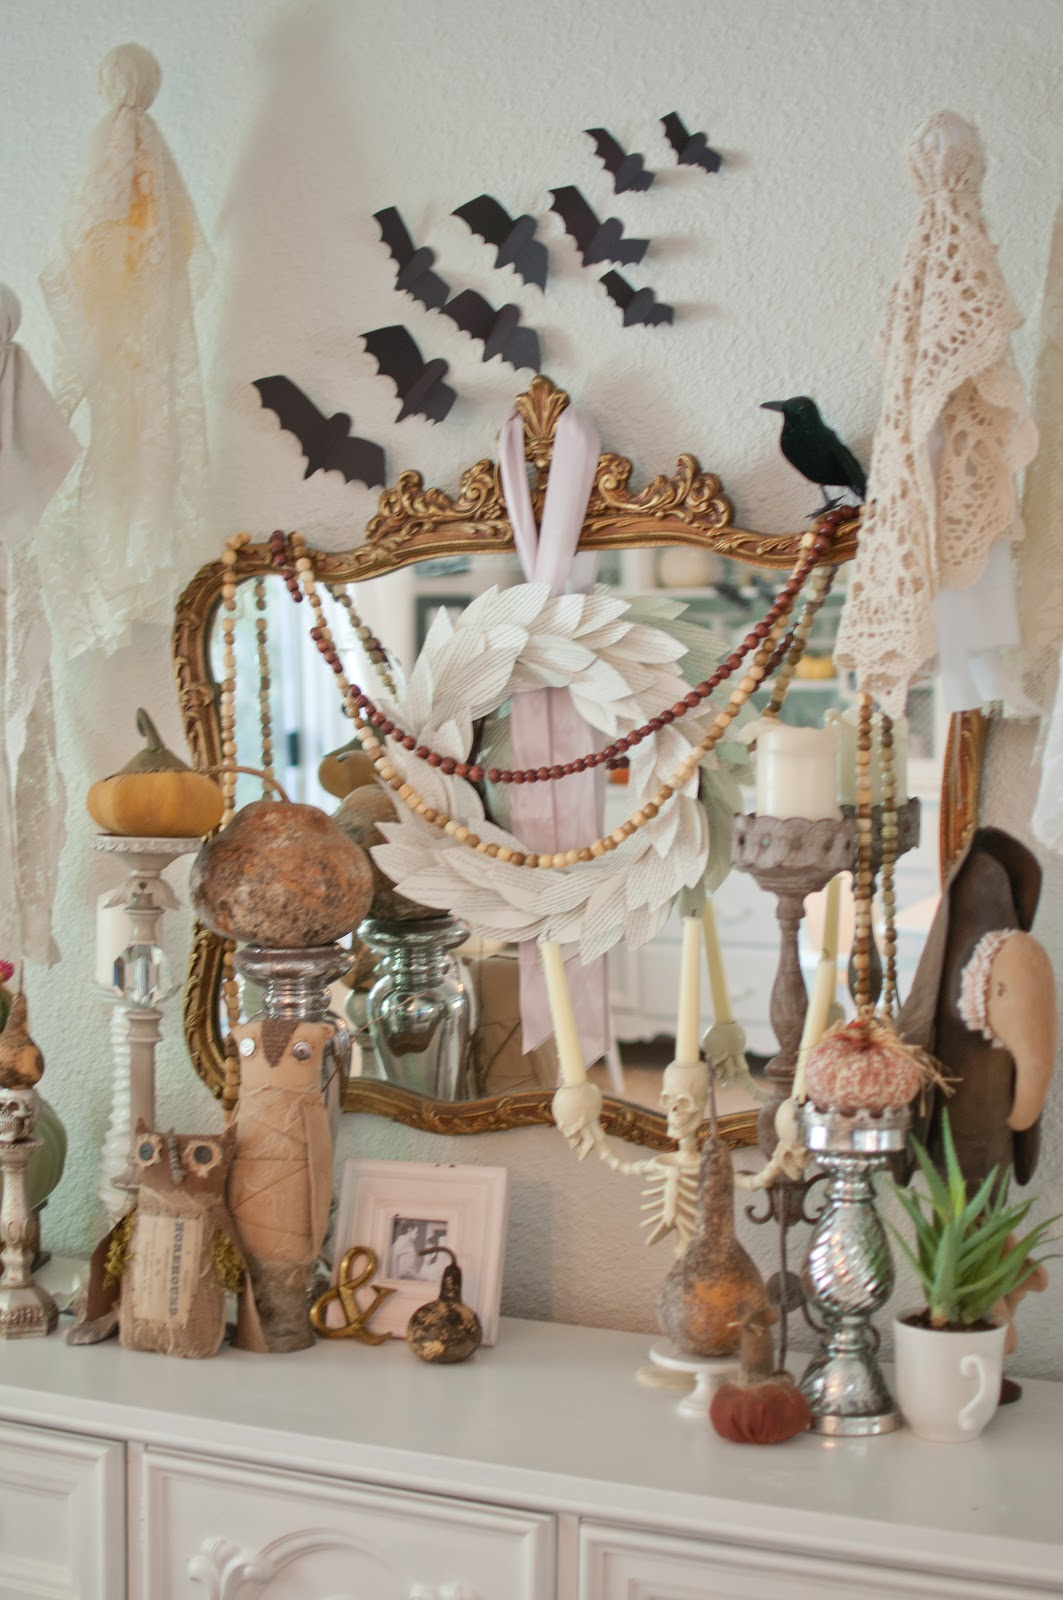 35 fall mantel decorating ideas halloween mantel decorations - Halloween Ideas Decorations